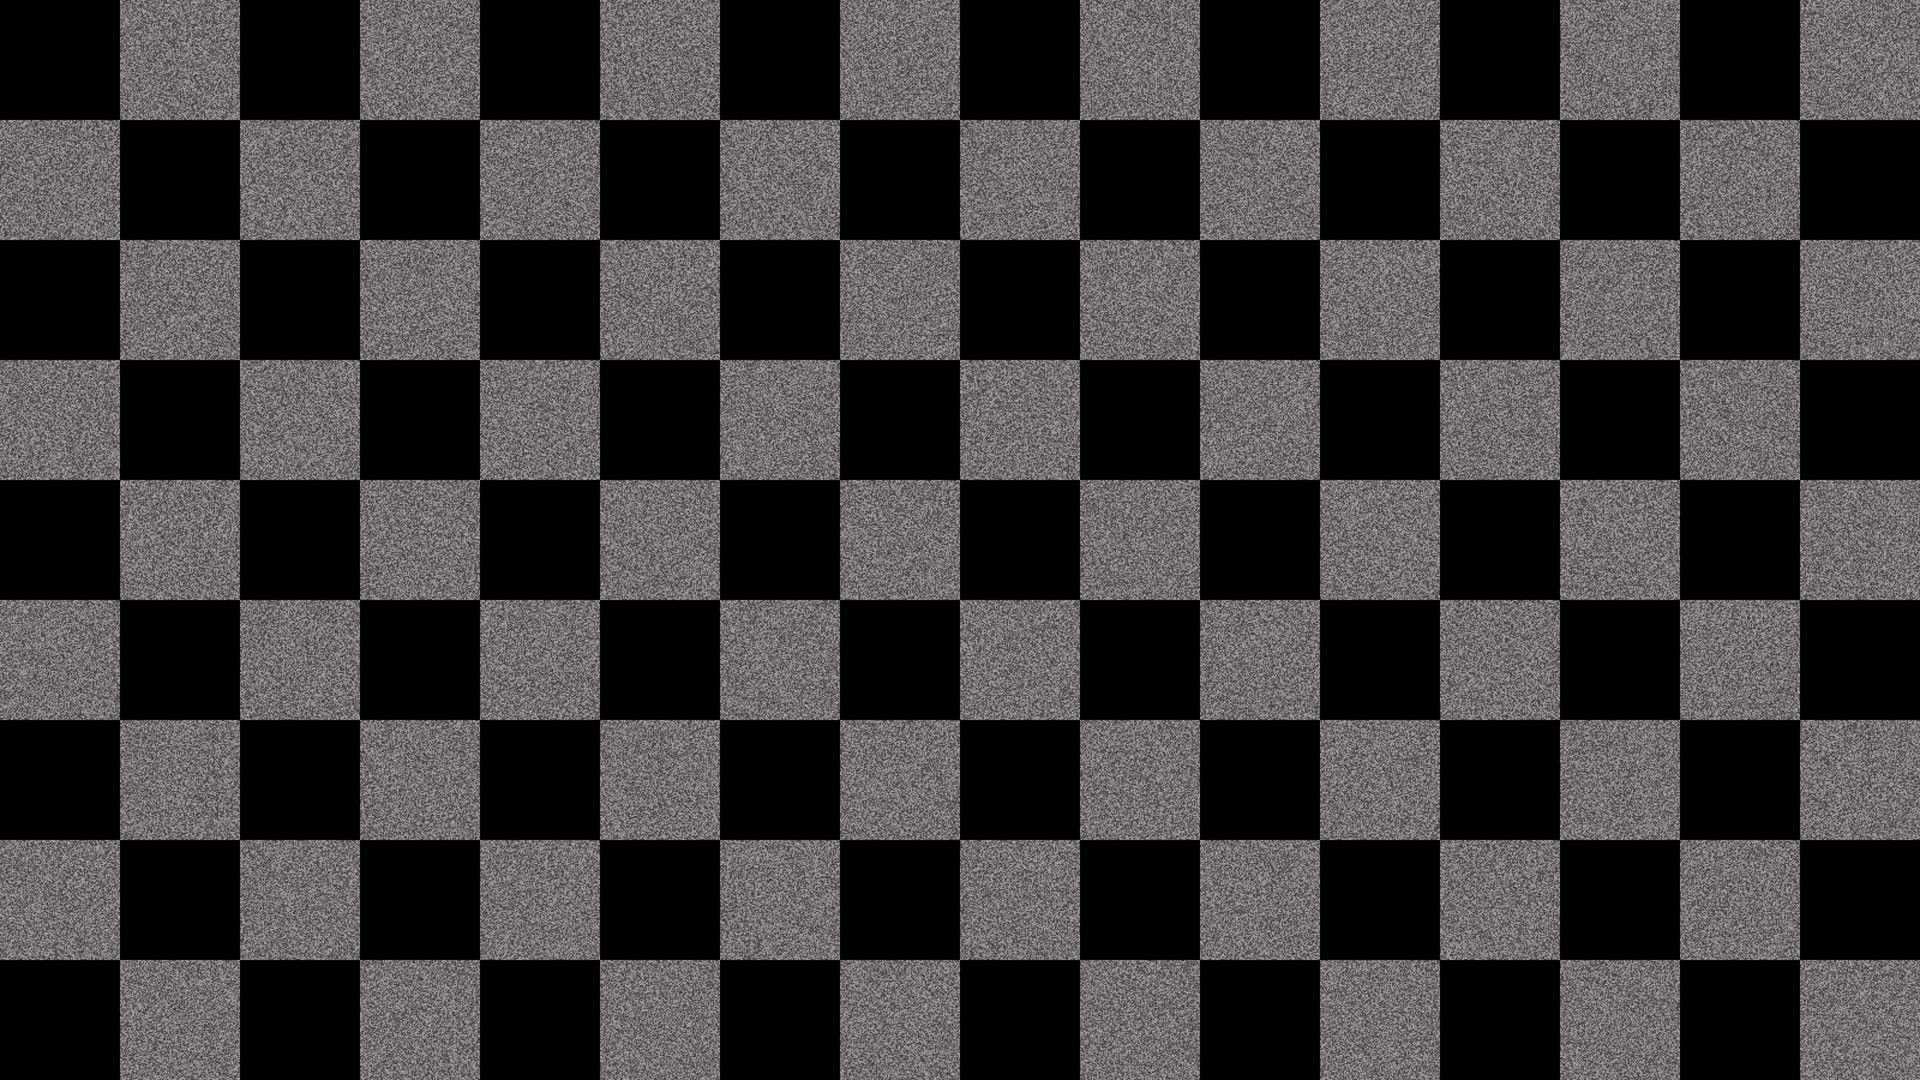 Checkered Free Wallpaper